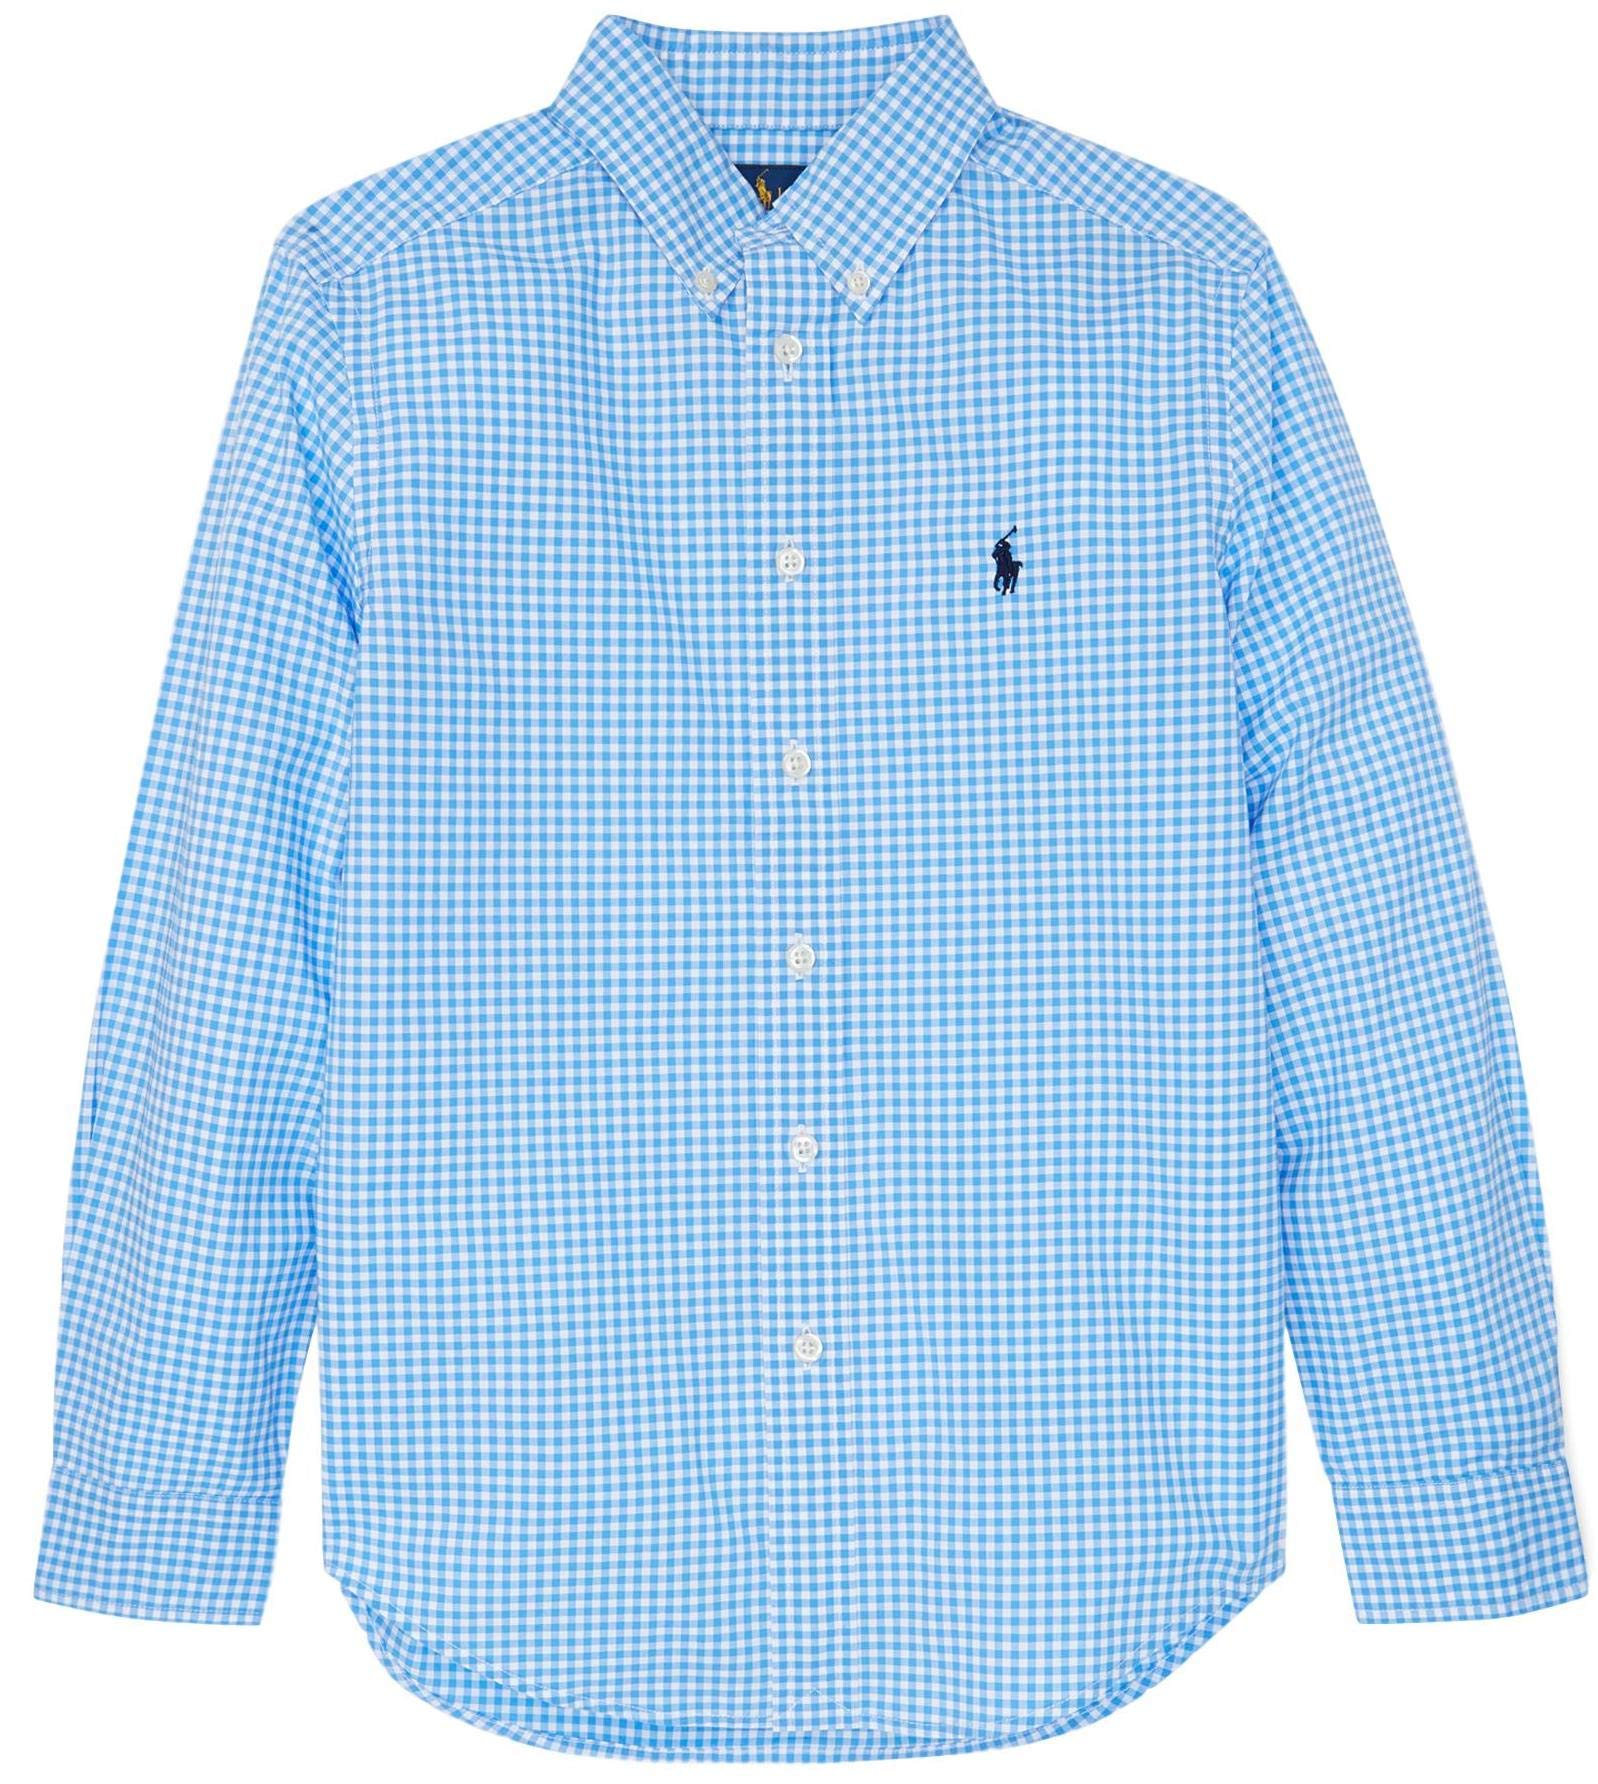 Polo Ralph Lauren Boys Plaid Cotton Poplin Button Down Shirt (XL, LiteBlueCheckerd)